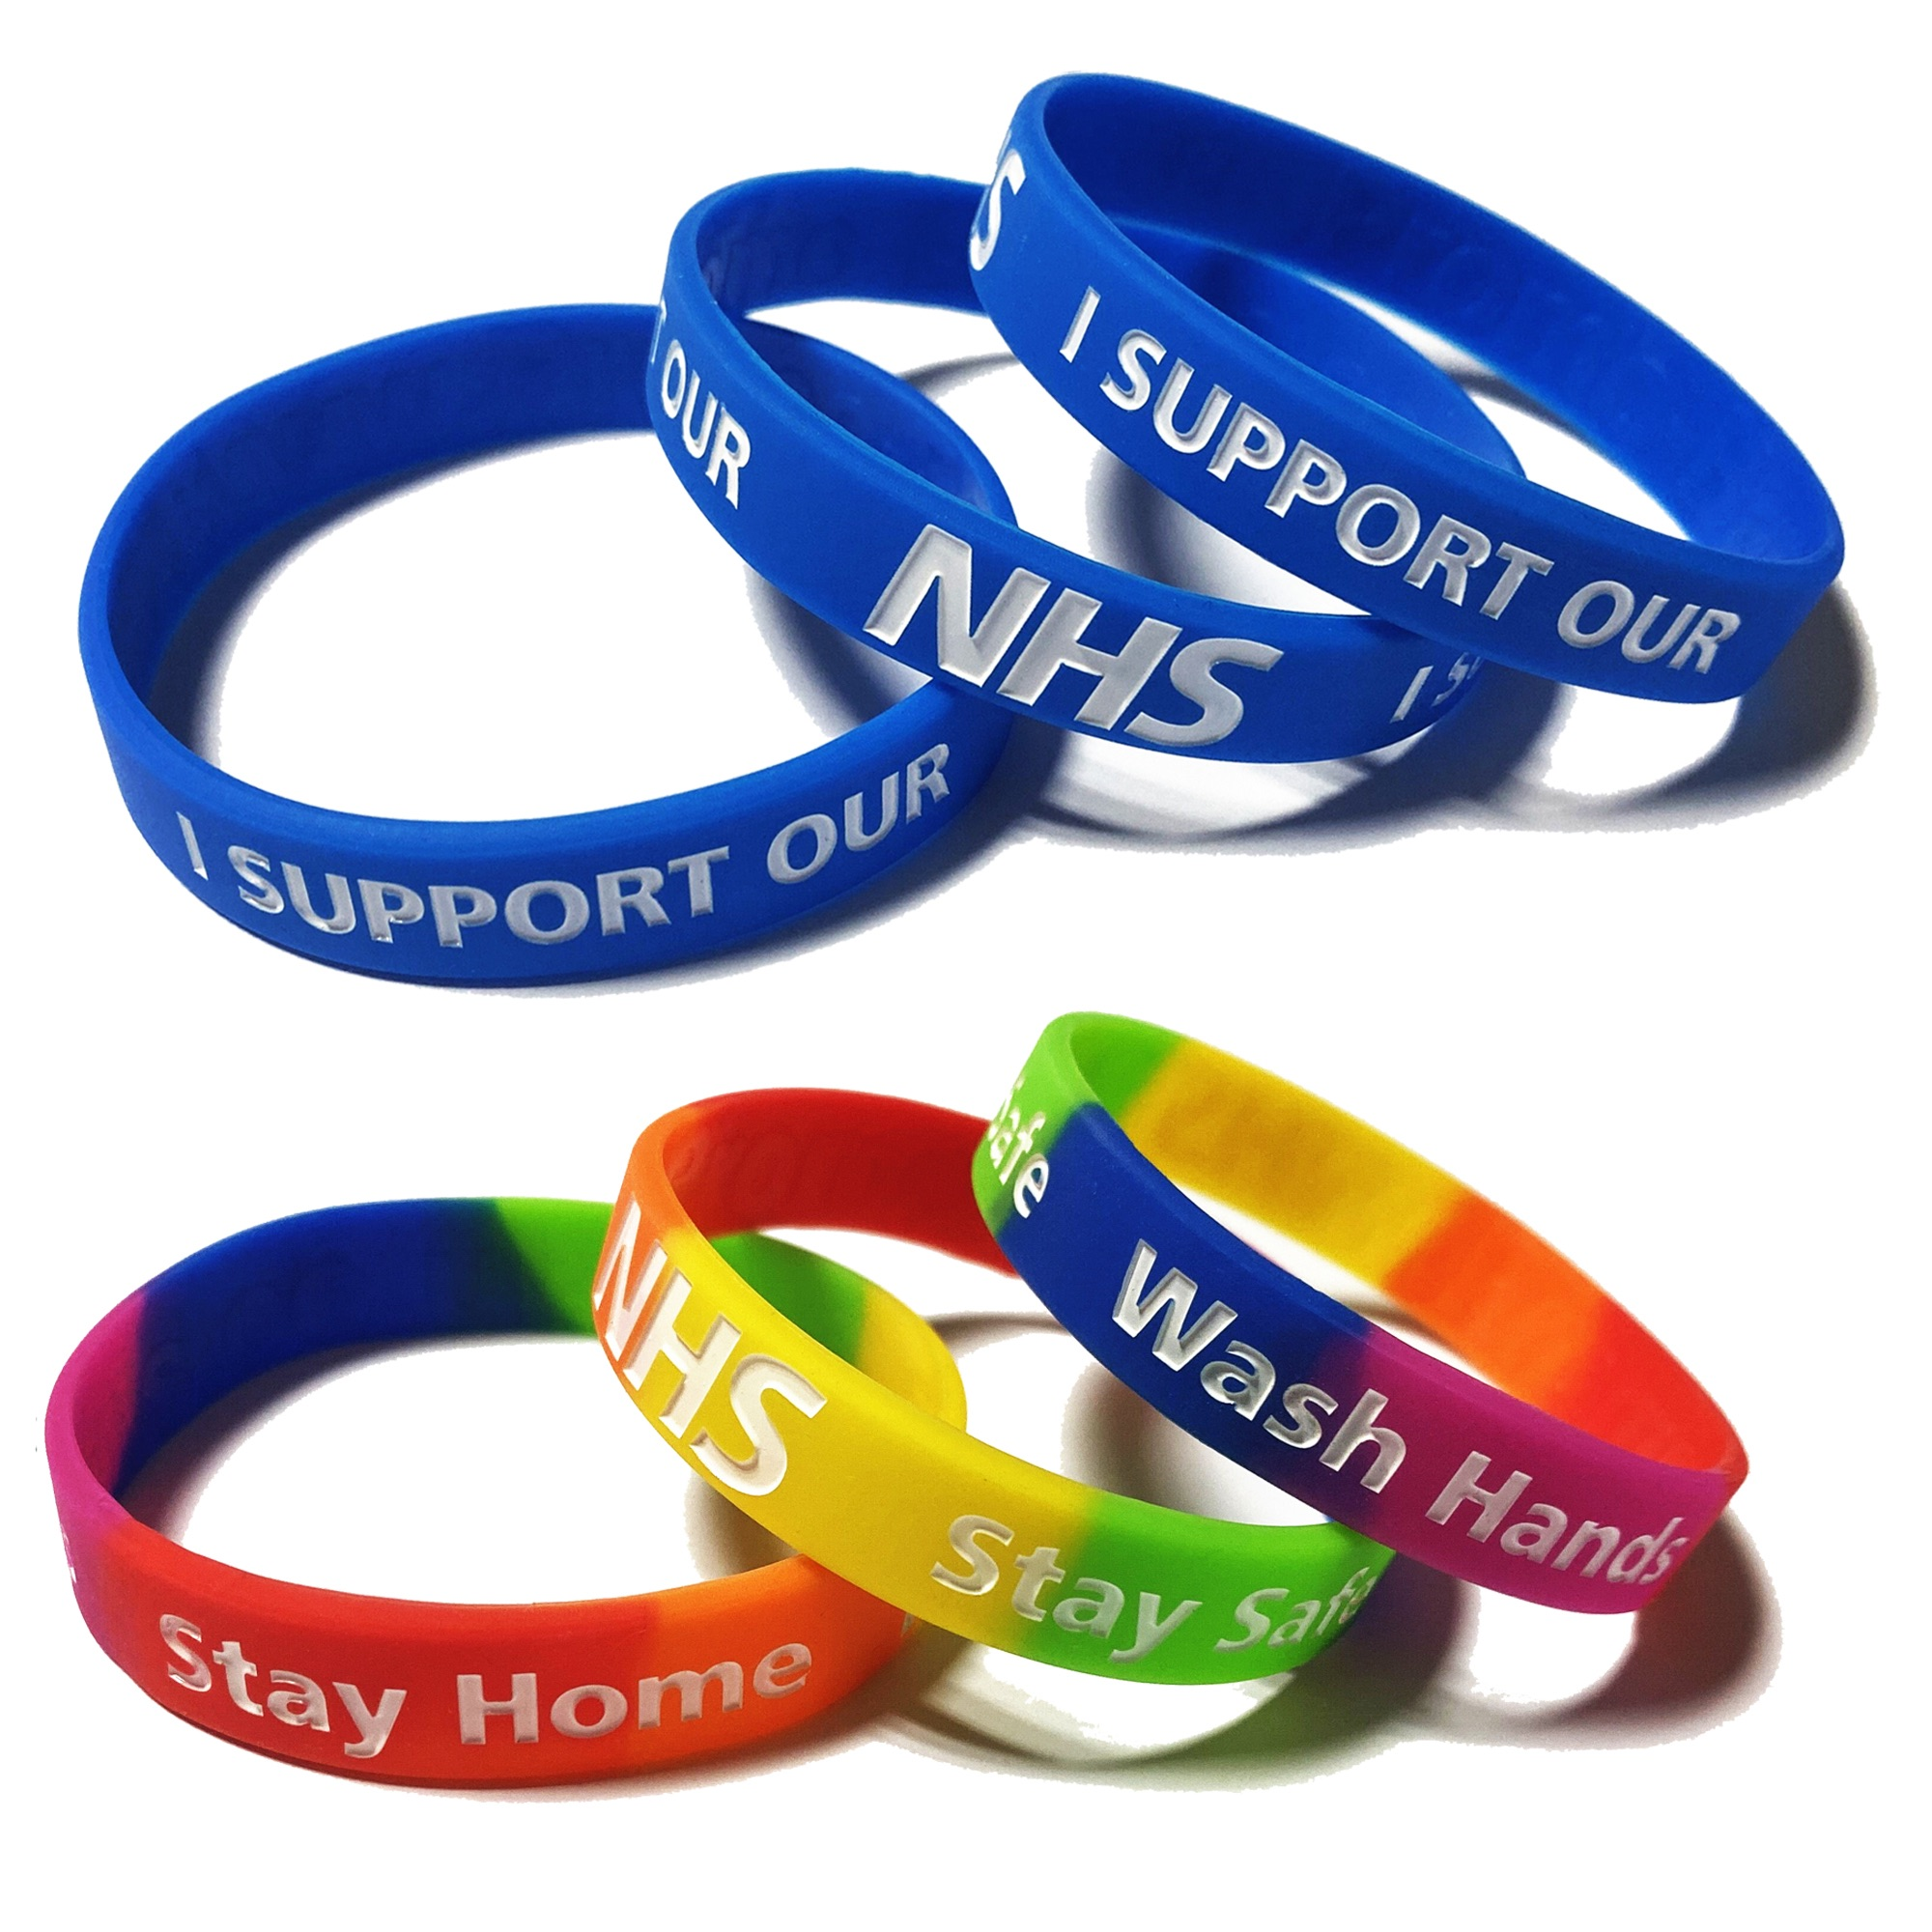 NHS wristbands